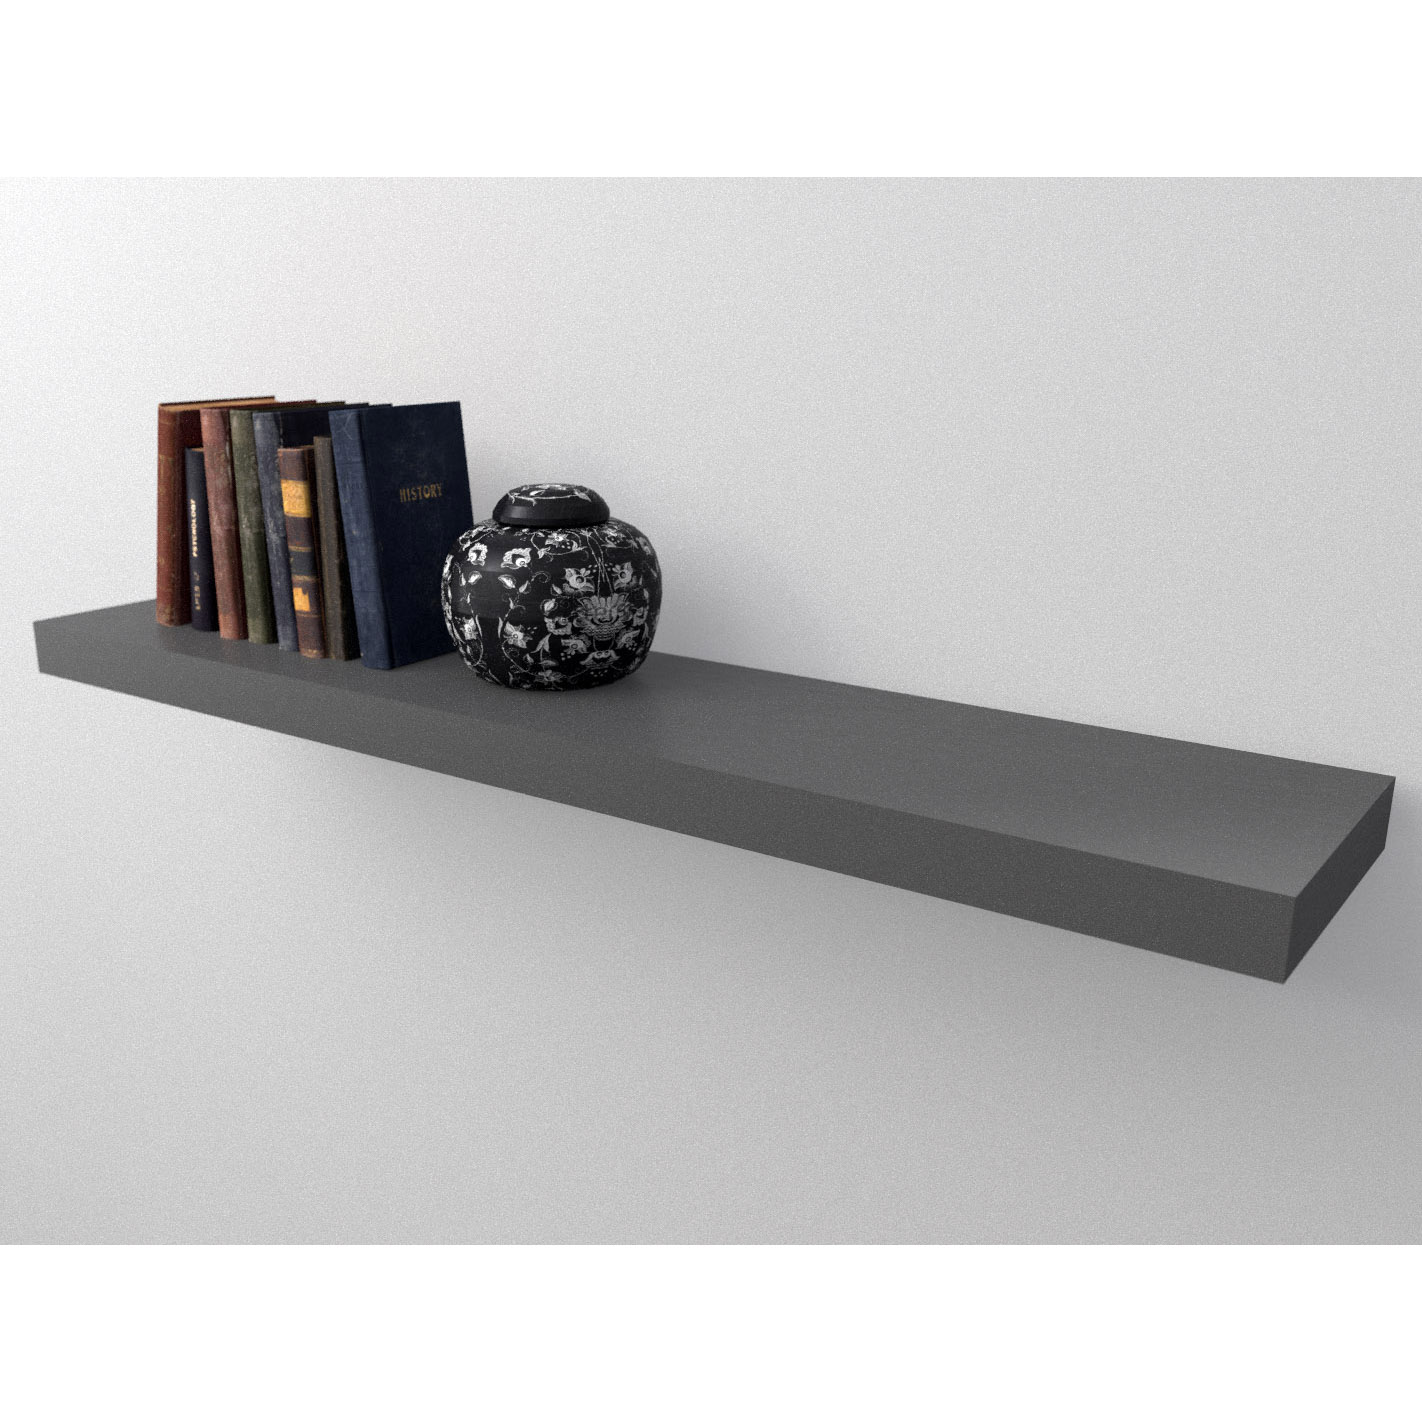 gray wall shelf pmpresssecretariat stone grey floating shelves dark kit mastershelf custom wood corner hanging shoe storage square and jacket rack audio mounted desk ikea pottery